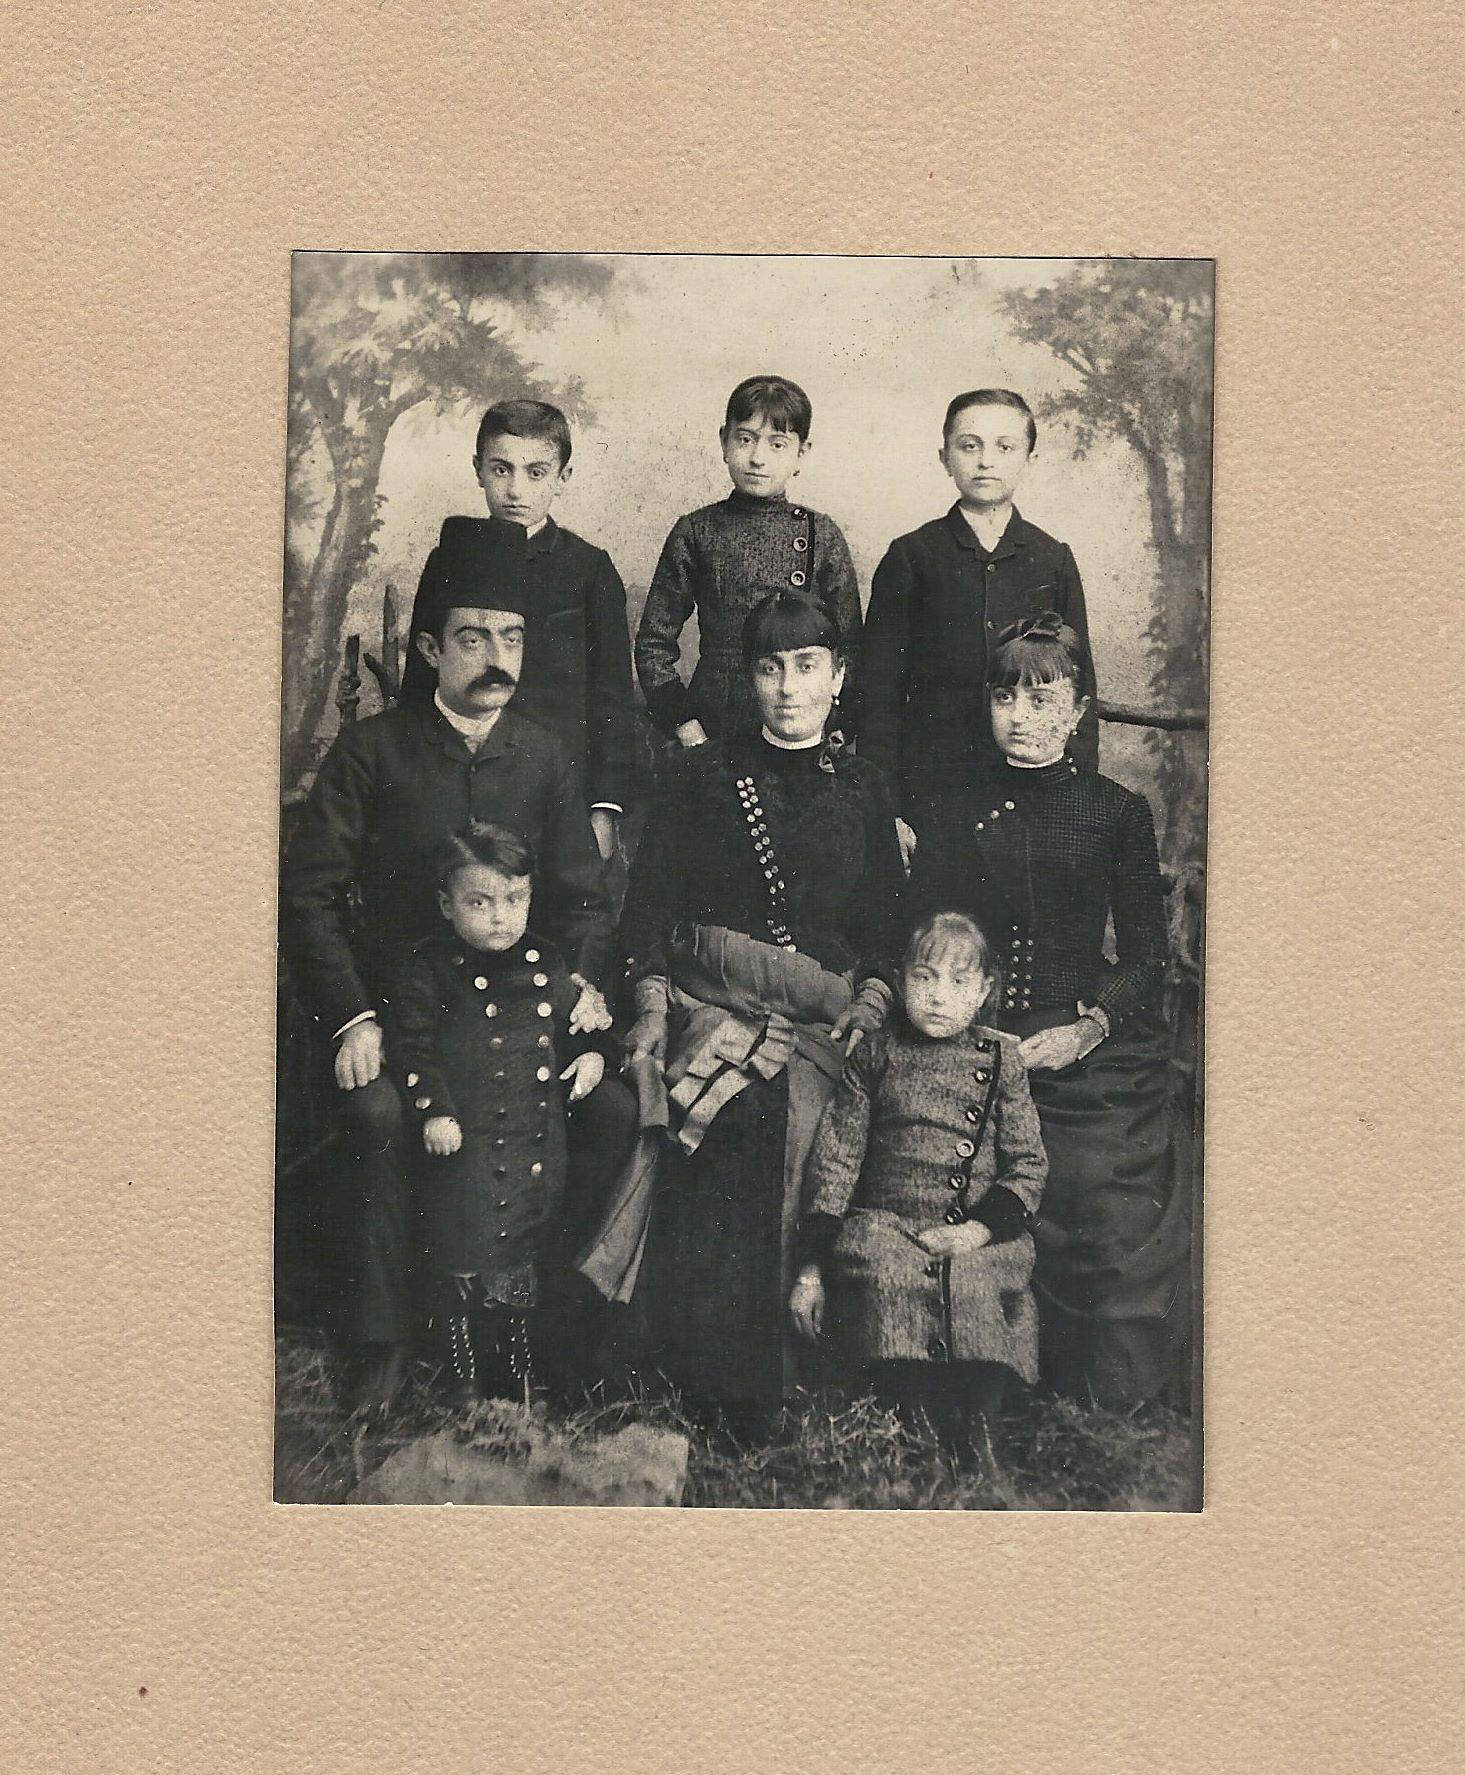 and old photo of Eli Silvera and family in Aleppo Syria in 1888